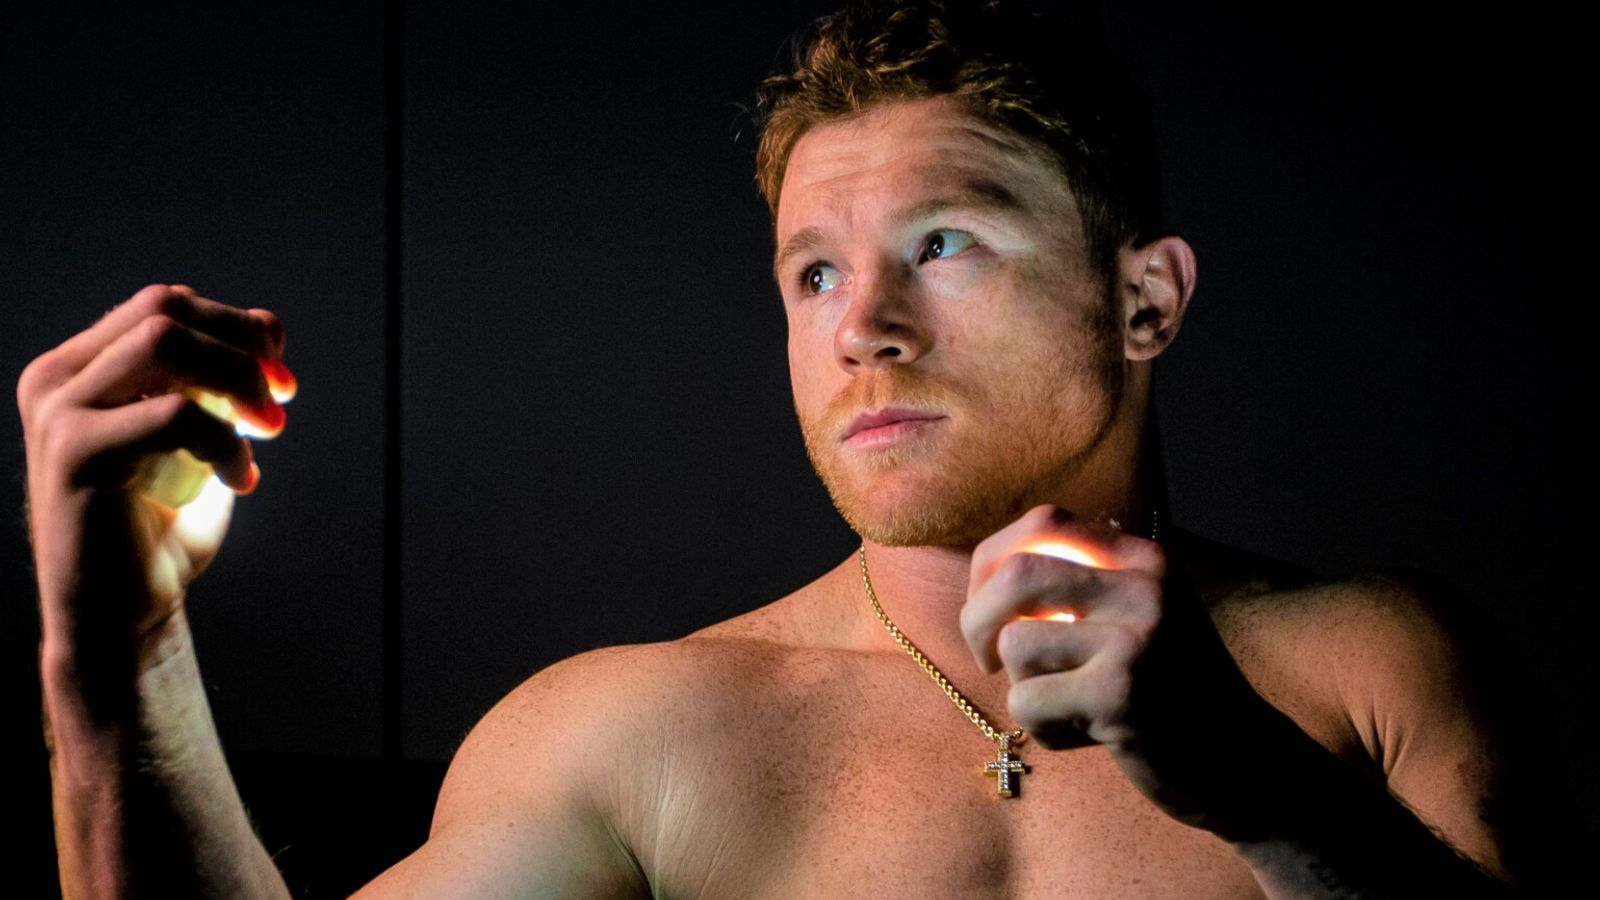 Saul 'Canelo' Alvarez's toughness is questioned as Billy Joe Saunders attempts to gain psychological edge